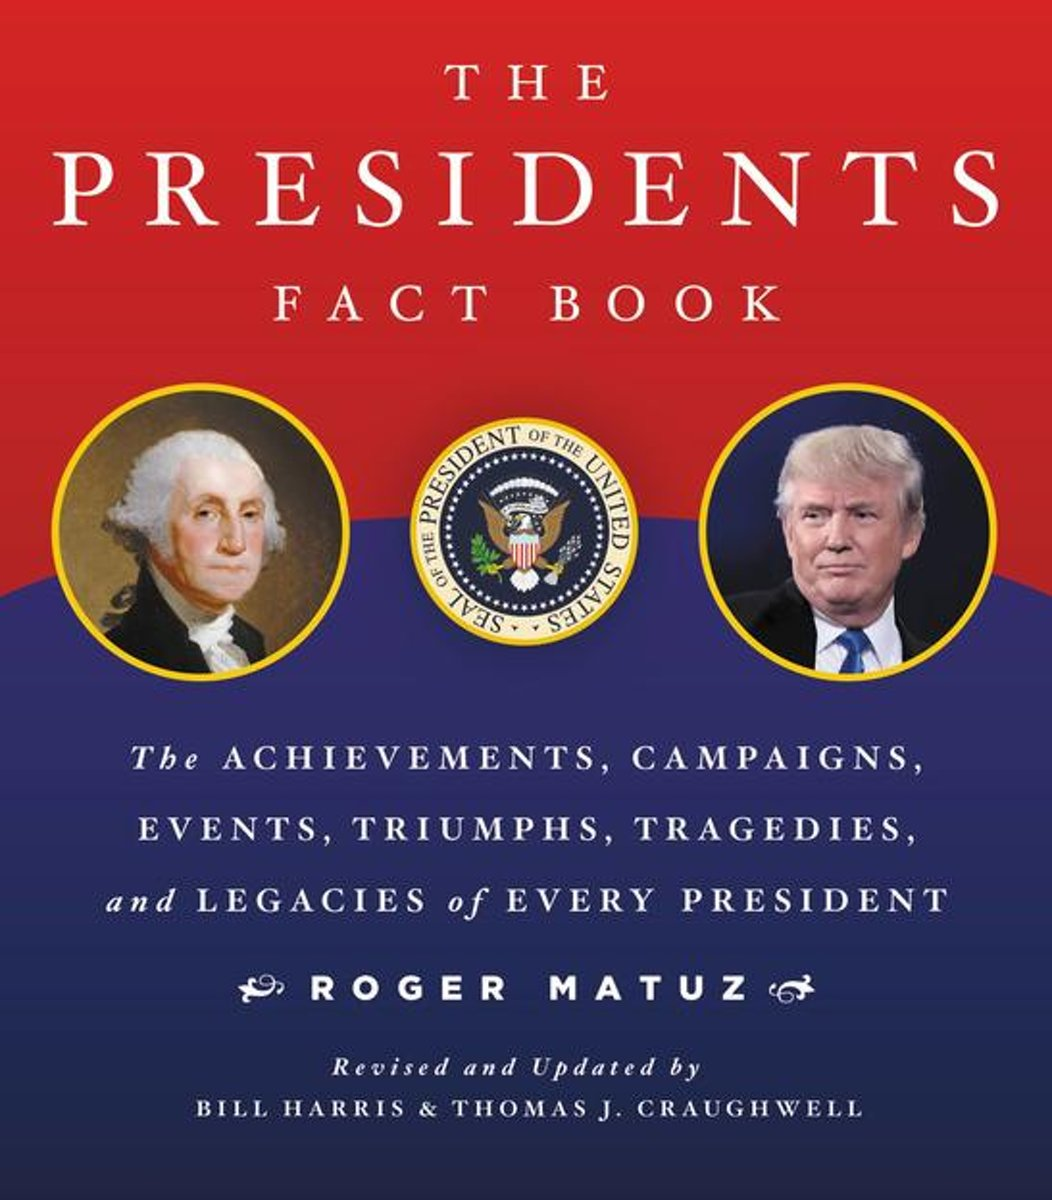 Presidents Fact Book Revised and Updated!